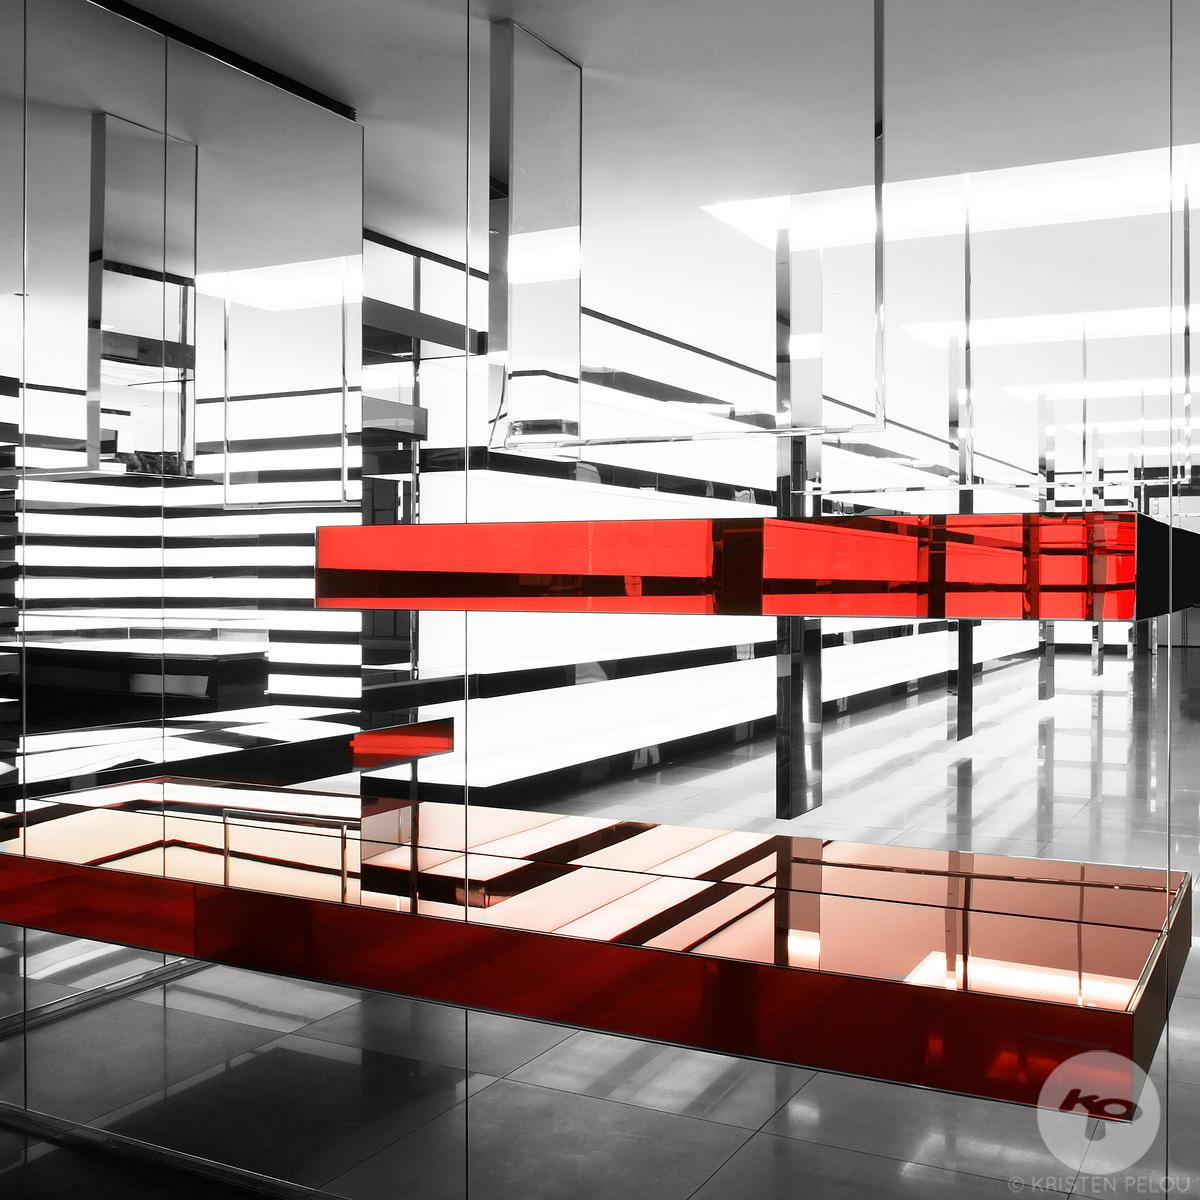 Retail architecture photographer Paris - DIOR HOMME STORE PEKING ROAD HONG KONG